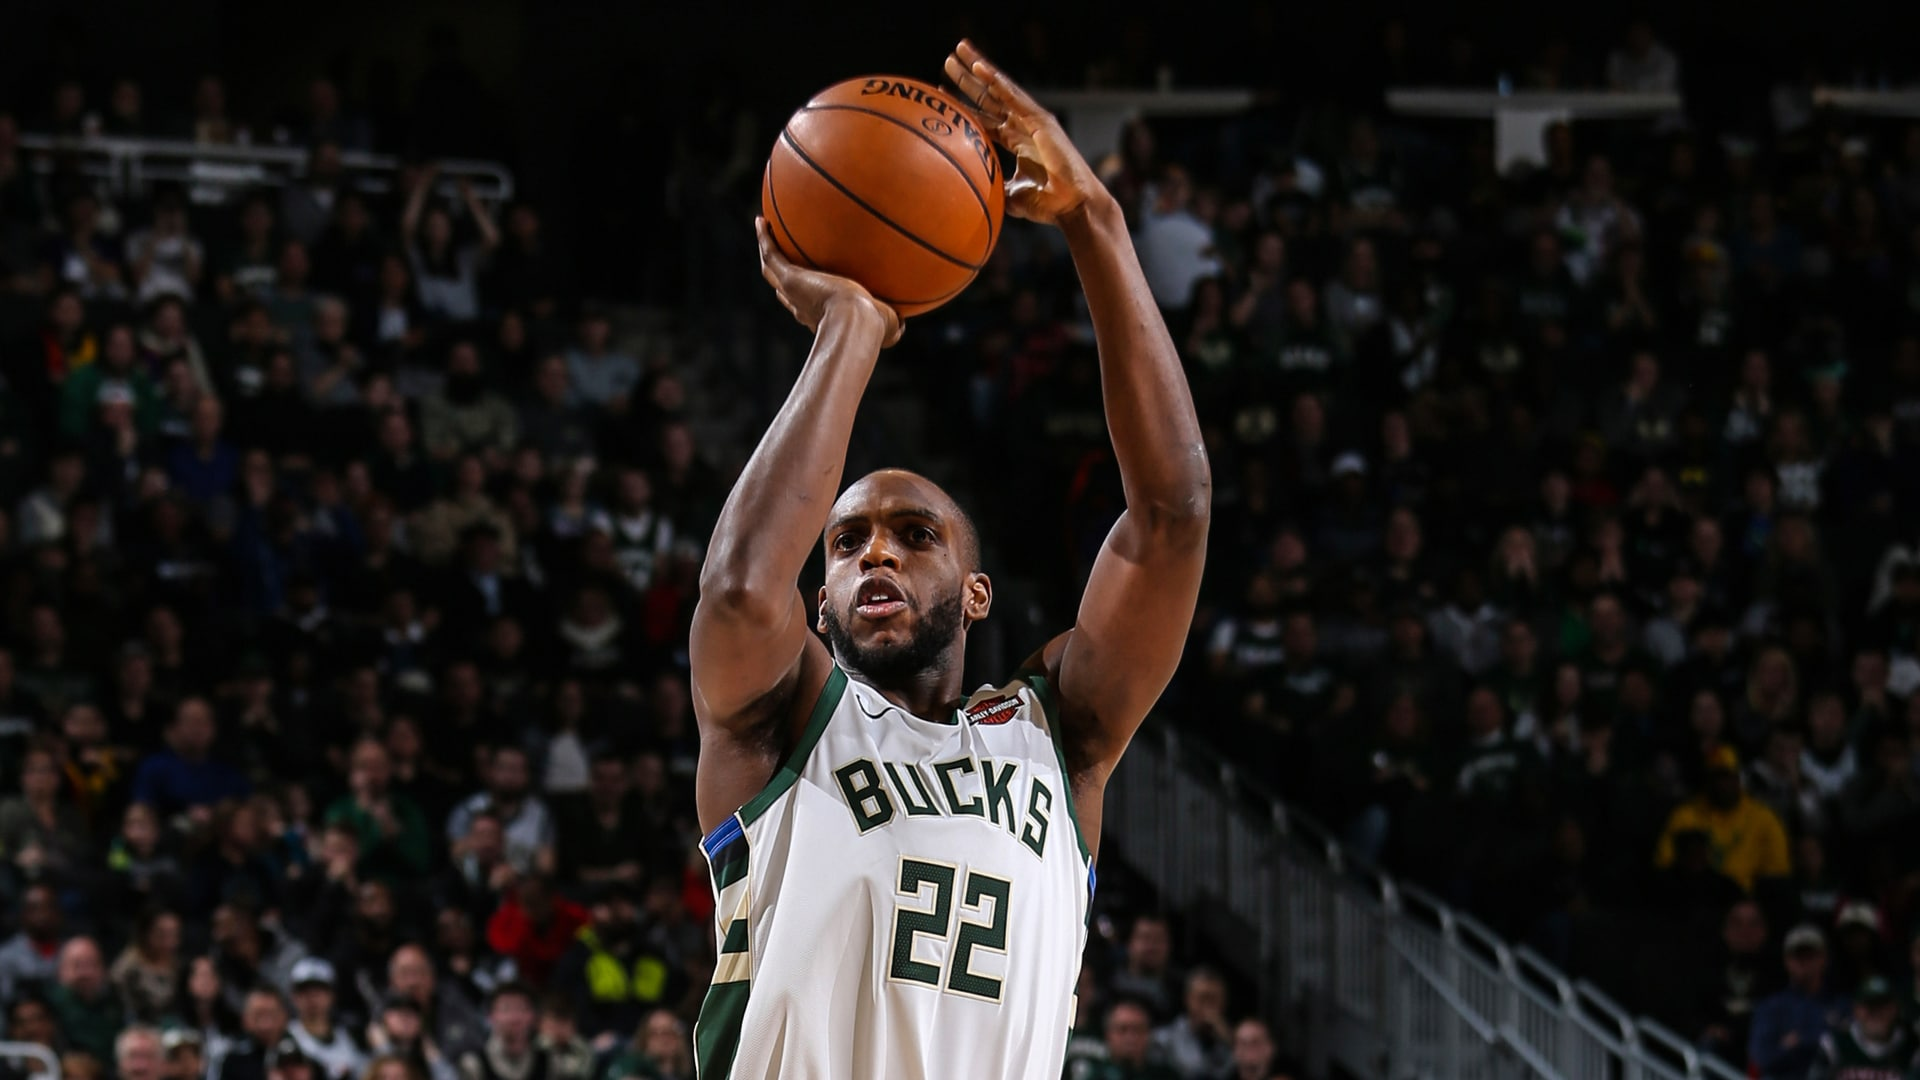 Khris Middleton Returns | Season Rewind: Game 18